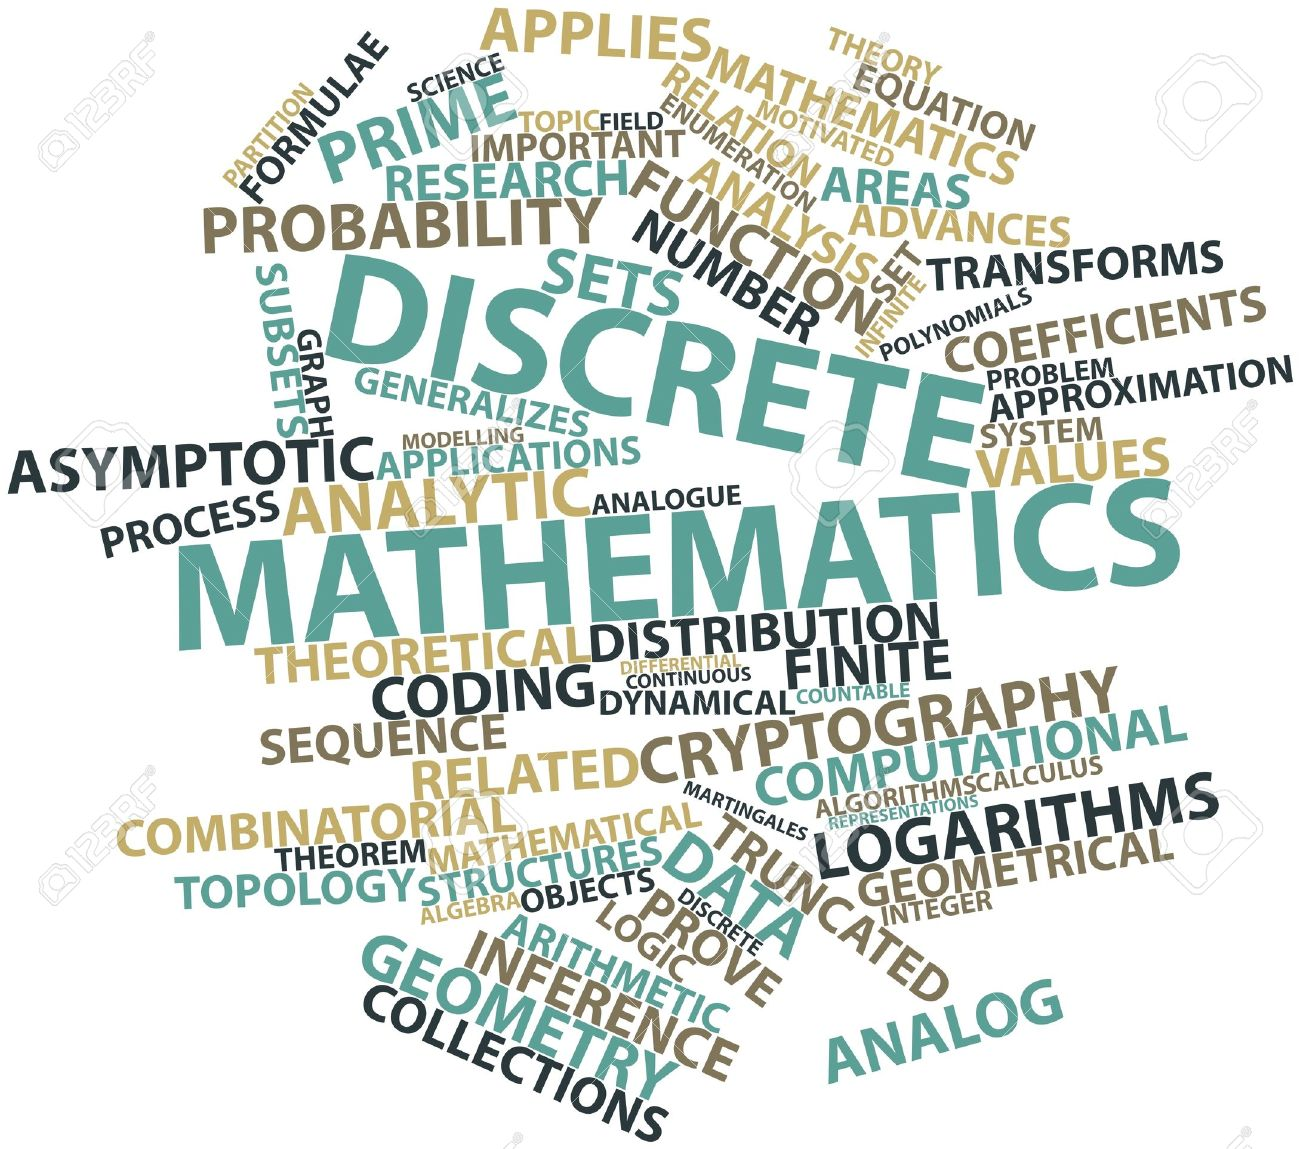 Discrete Math Worksheets Image collections - worksheet for kids in ...